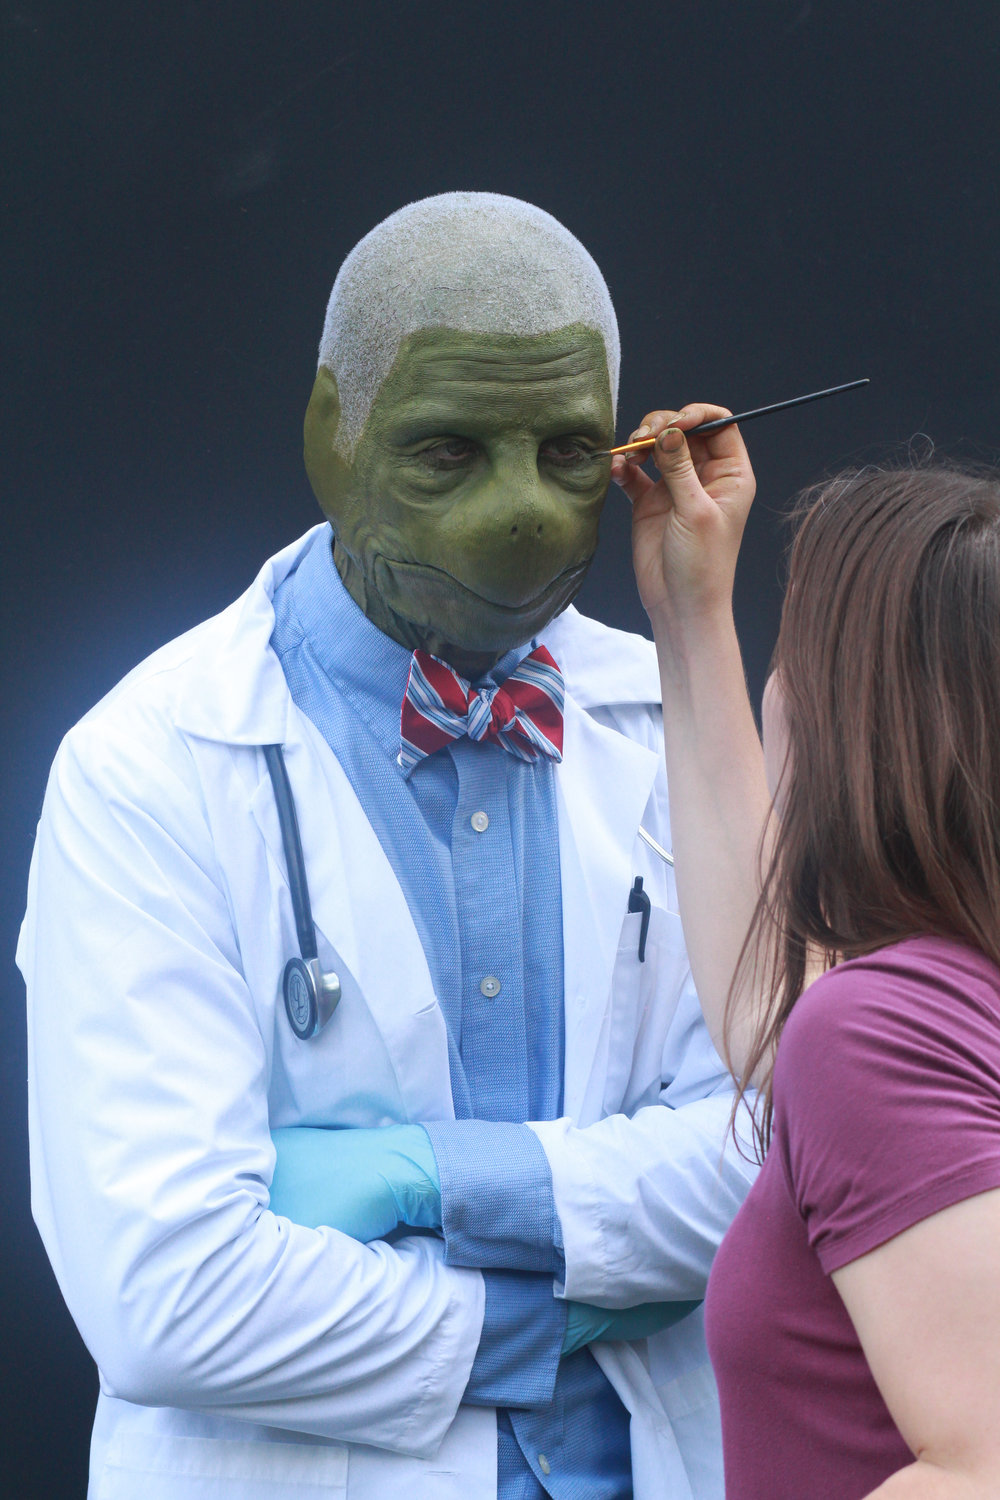 behind the scenes at AMUA turtle humanoid doctor touch ups